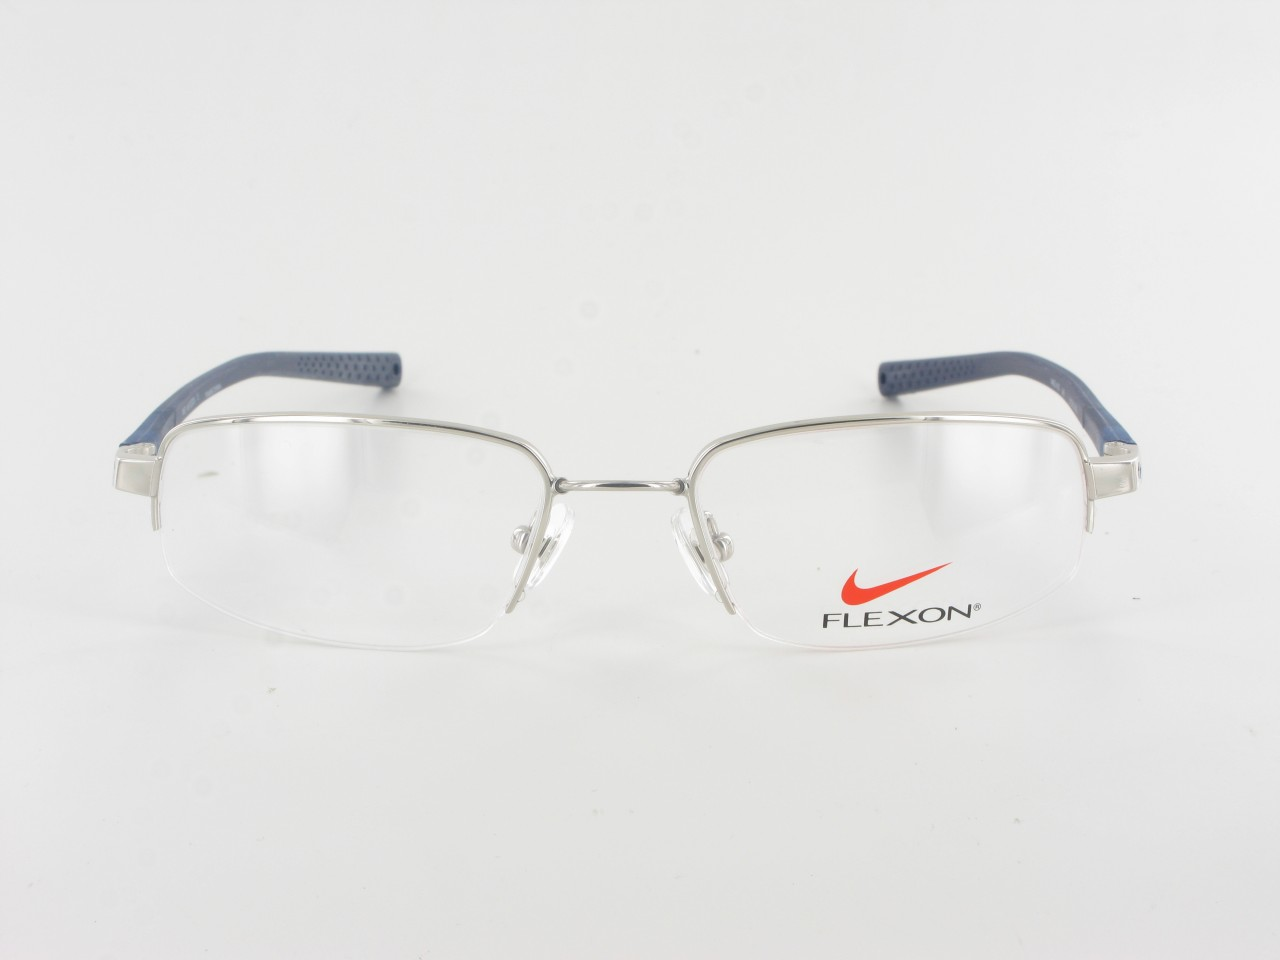 Nike Flexon Eyeglass Frame : New NIKE FLEXON EYEGLASS FRAMES NK 4182 Sporty Flexible ...